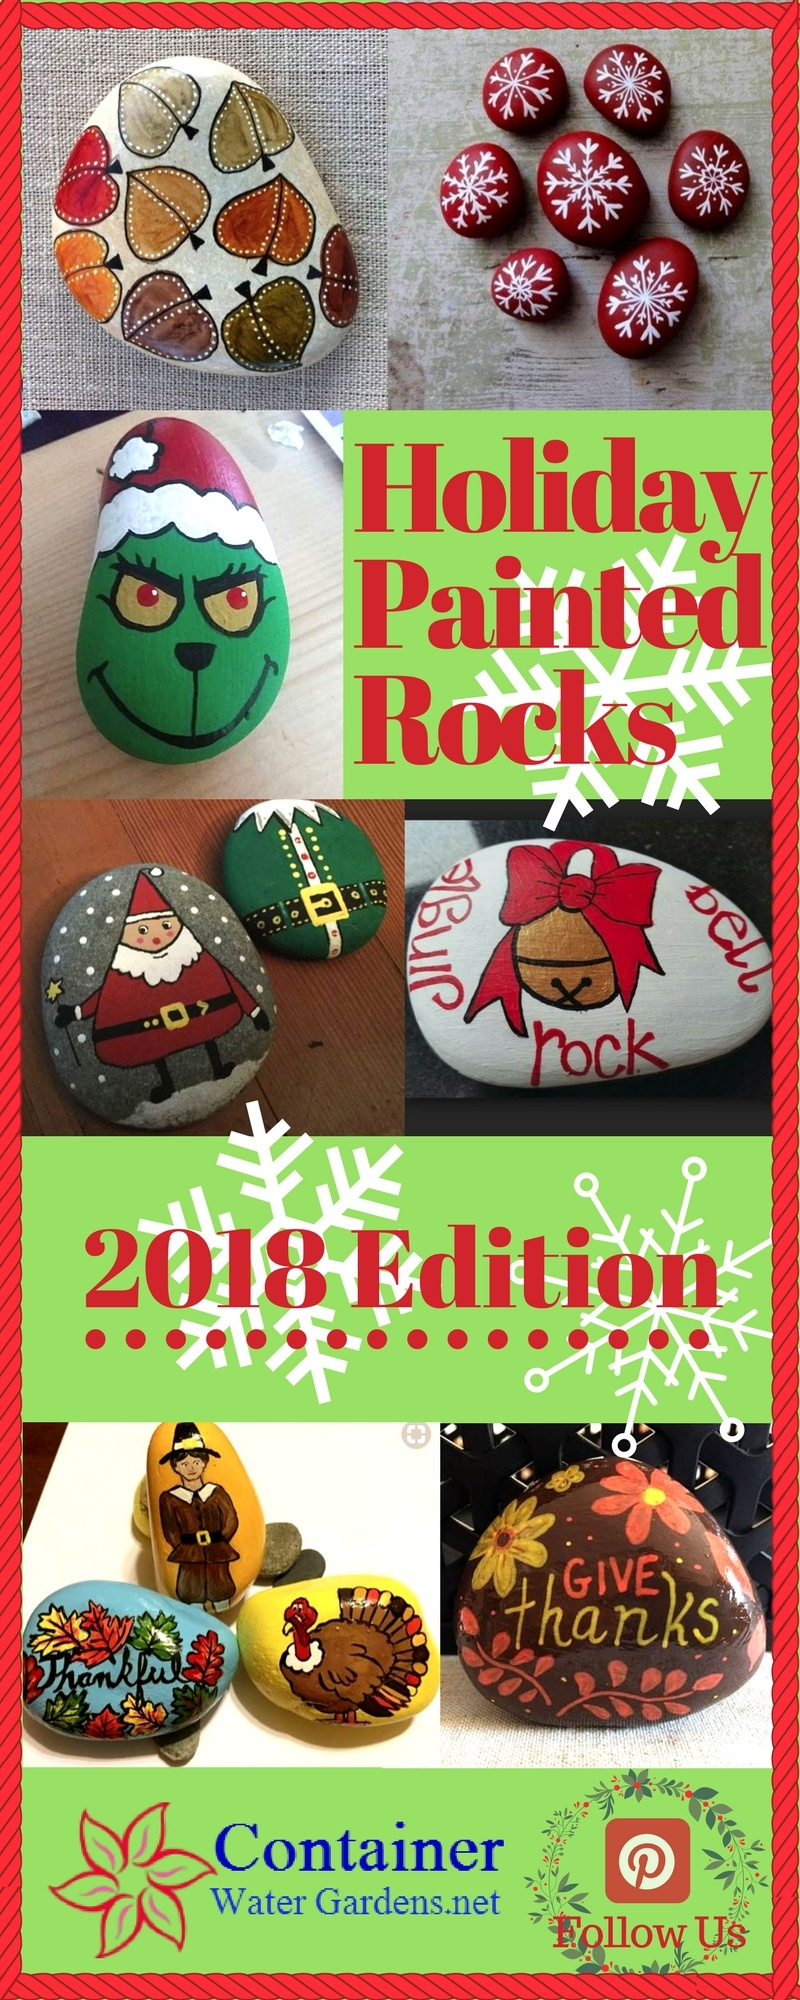 Holiday Painted Rocks 2018